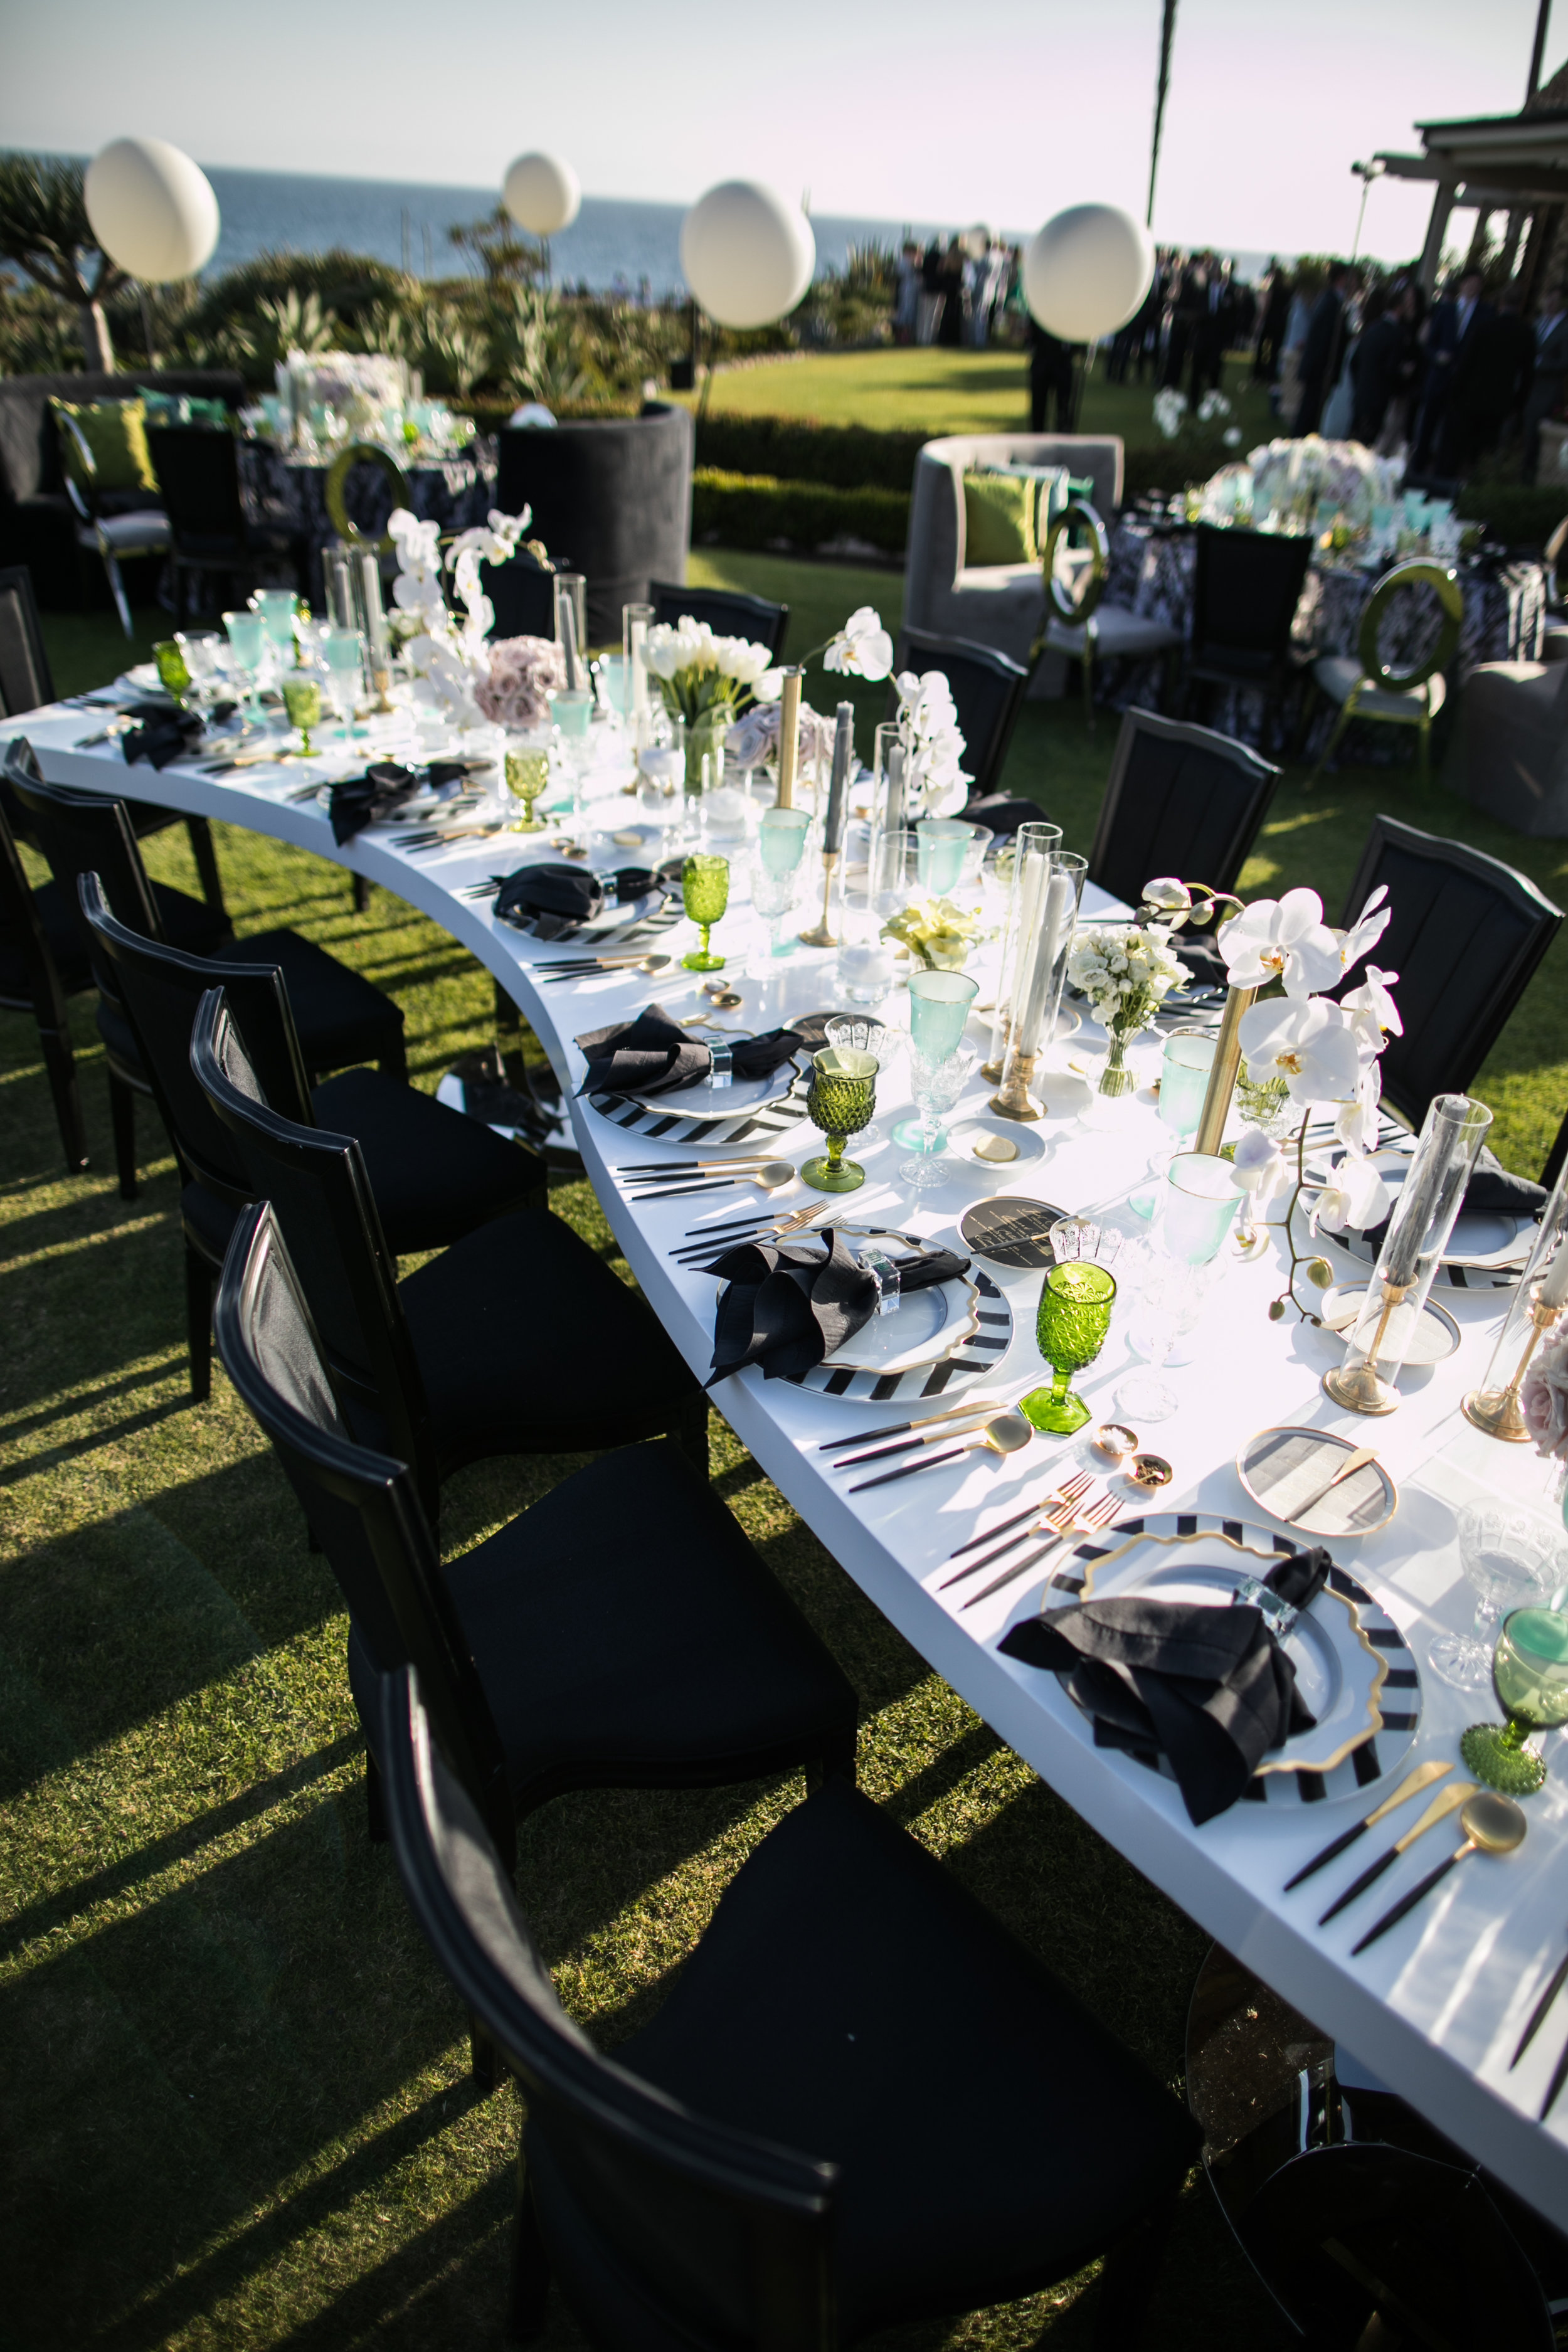 Wedding Reception Details - Laguna Beach, California - Summer Wedding - Julian Leaver Events